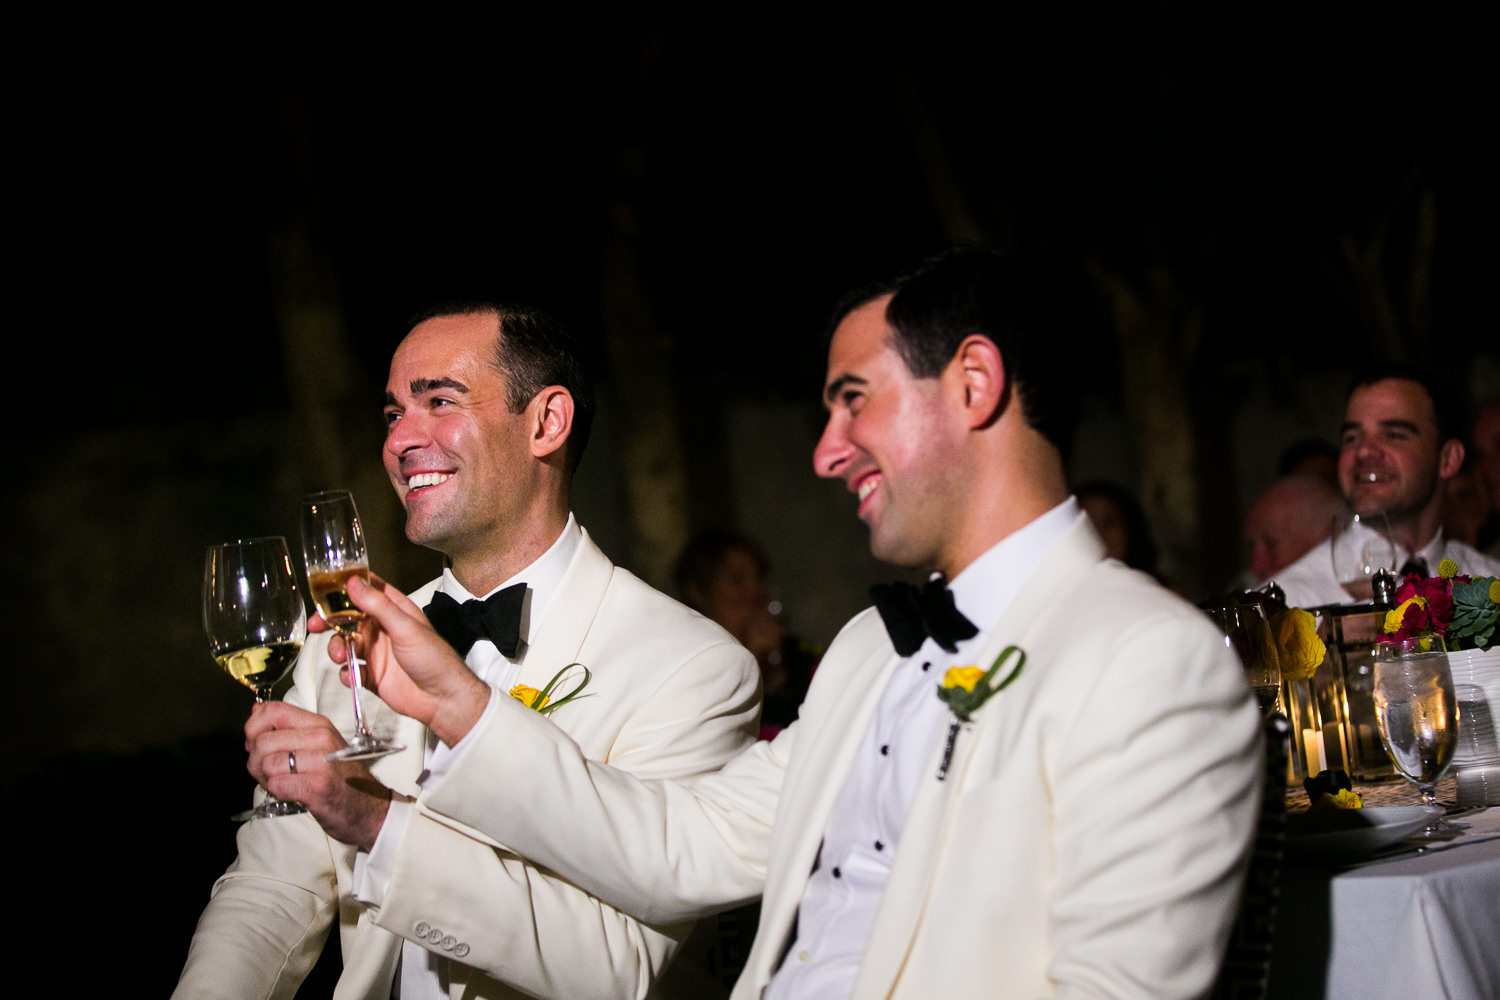 Same Sex Avalon Palm Springs Wedding - Toasting Together At Reception